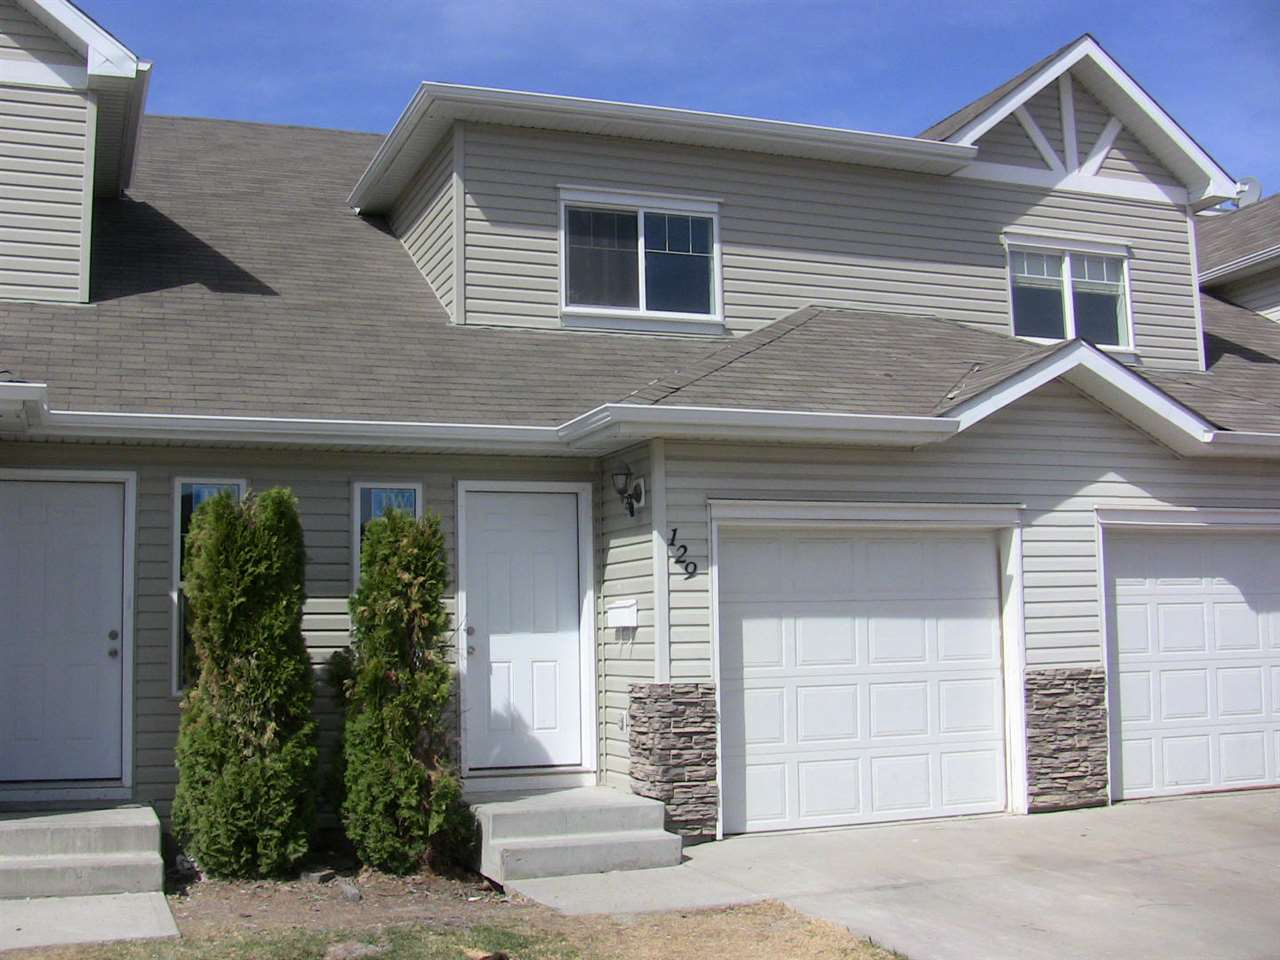 129 150 EDWARDS Drive, 3 bed, 1.1 bath, at $245,000